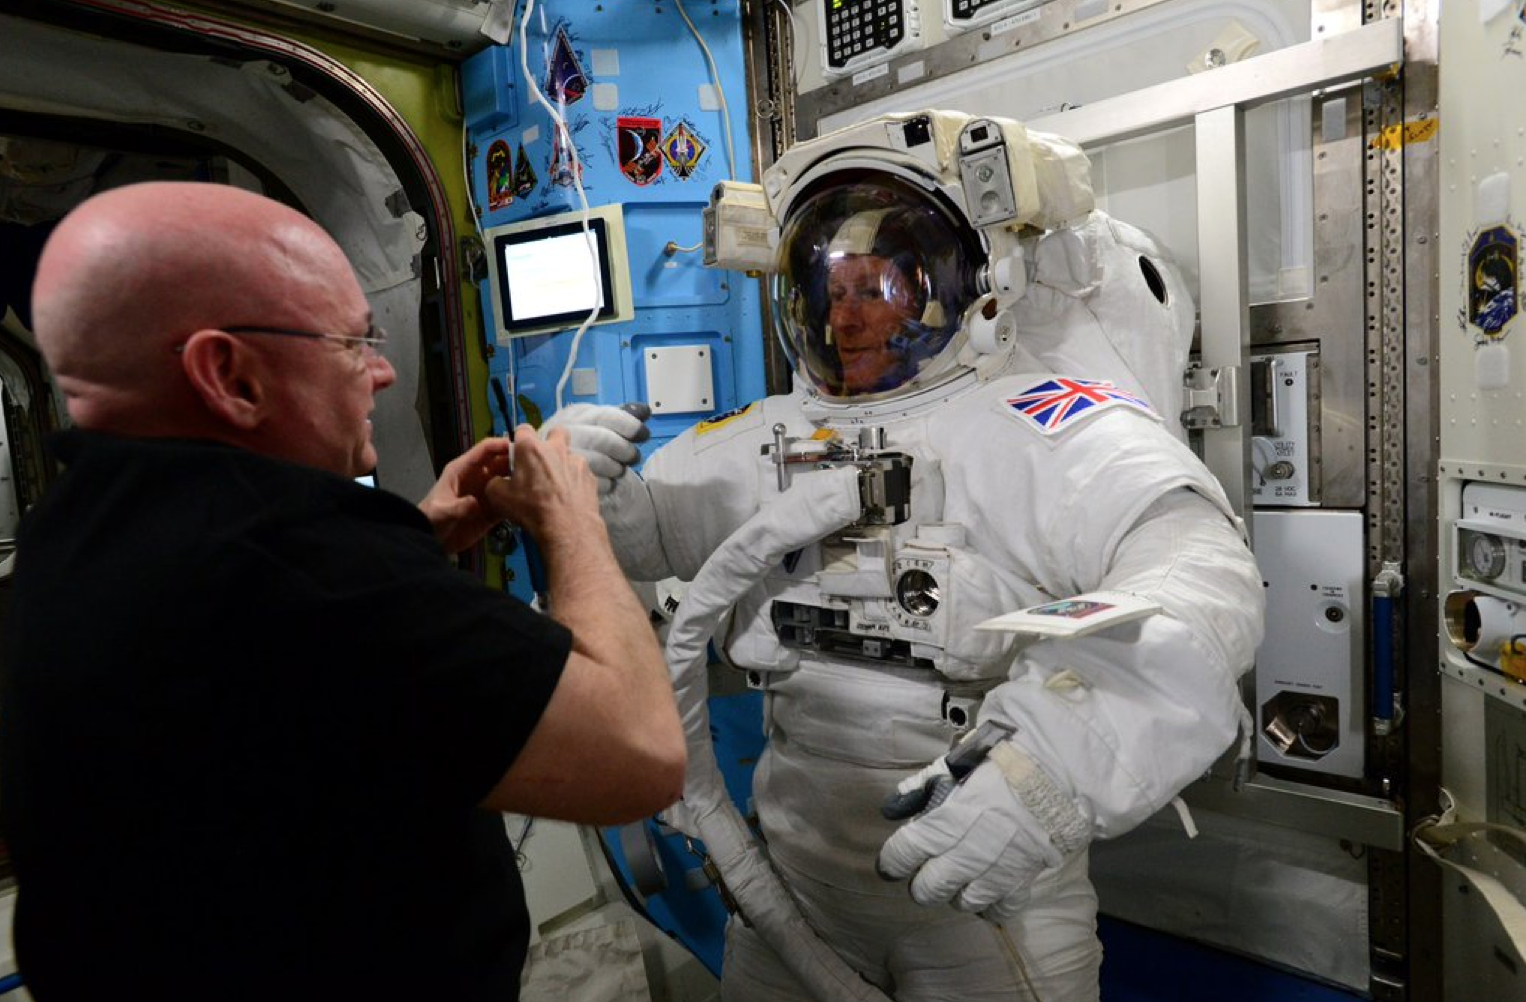 ESA's Tim Peake tries on his space suit with the help of Scott Kelly.